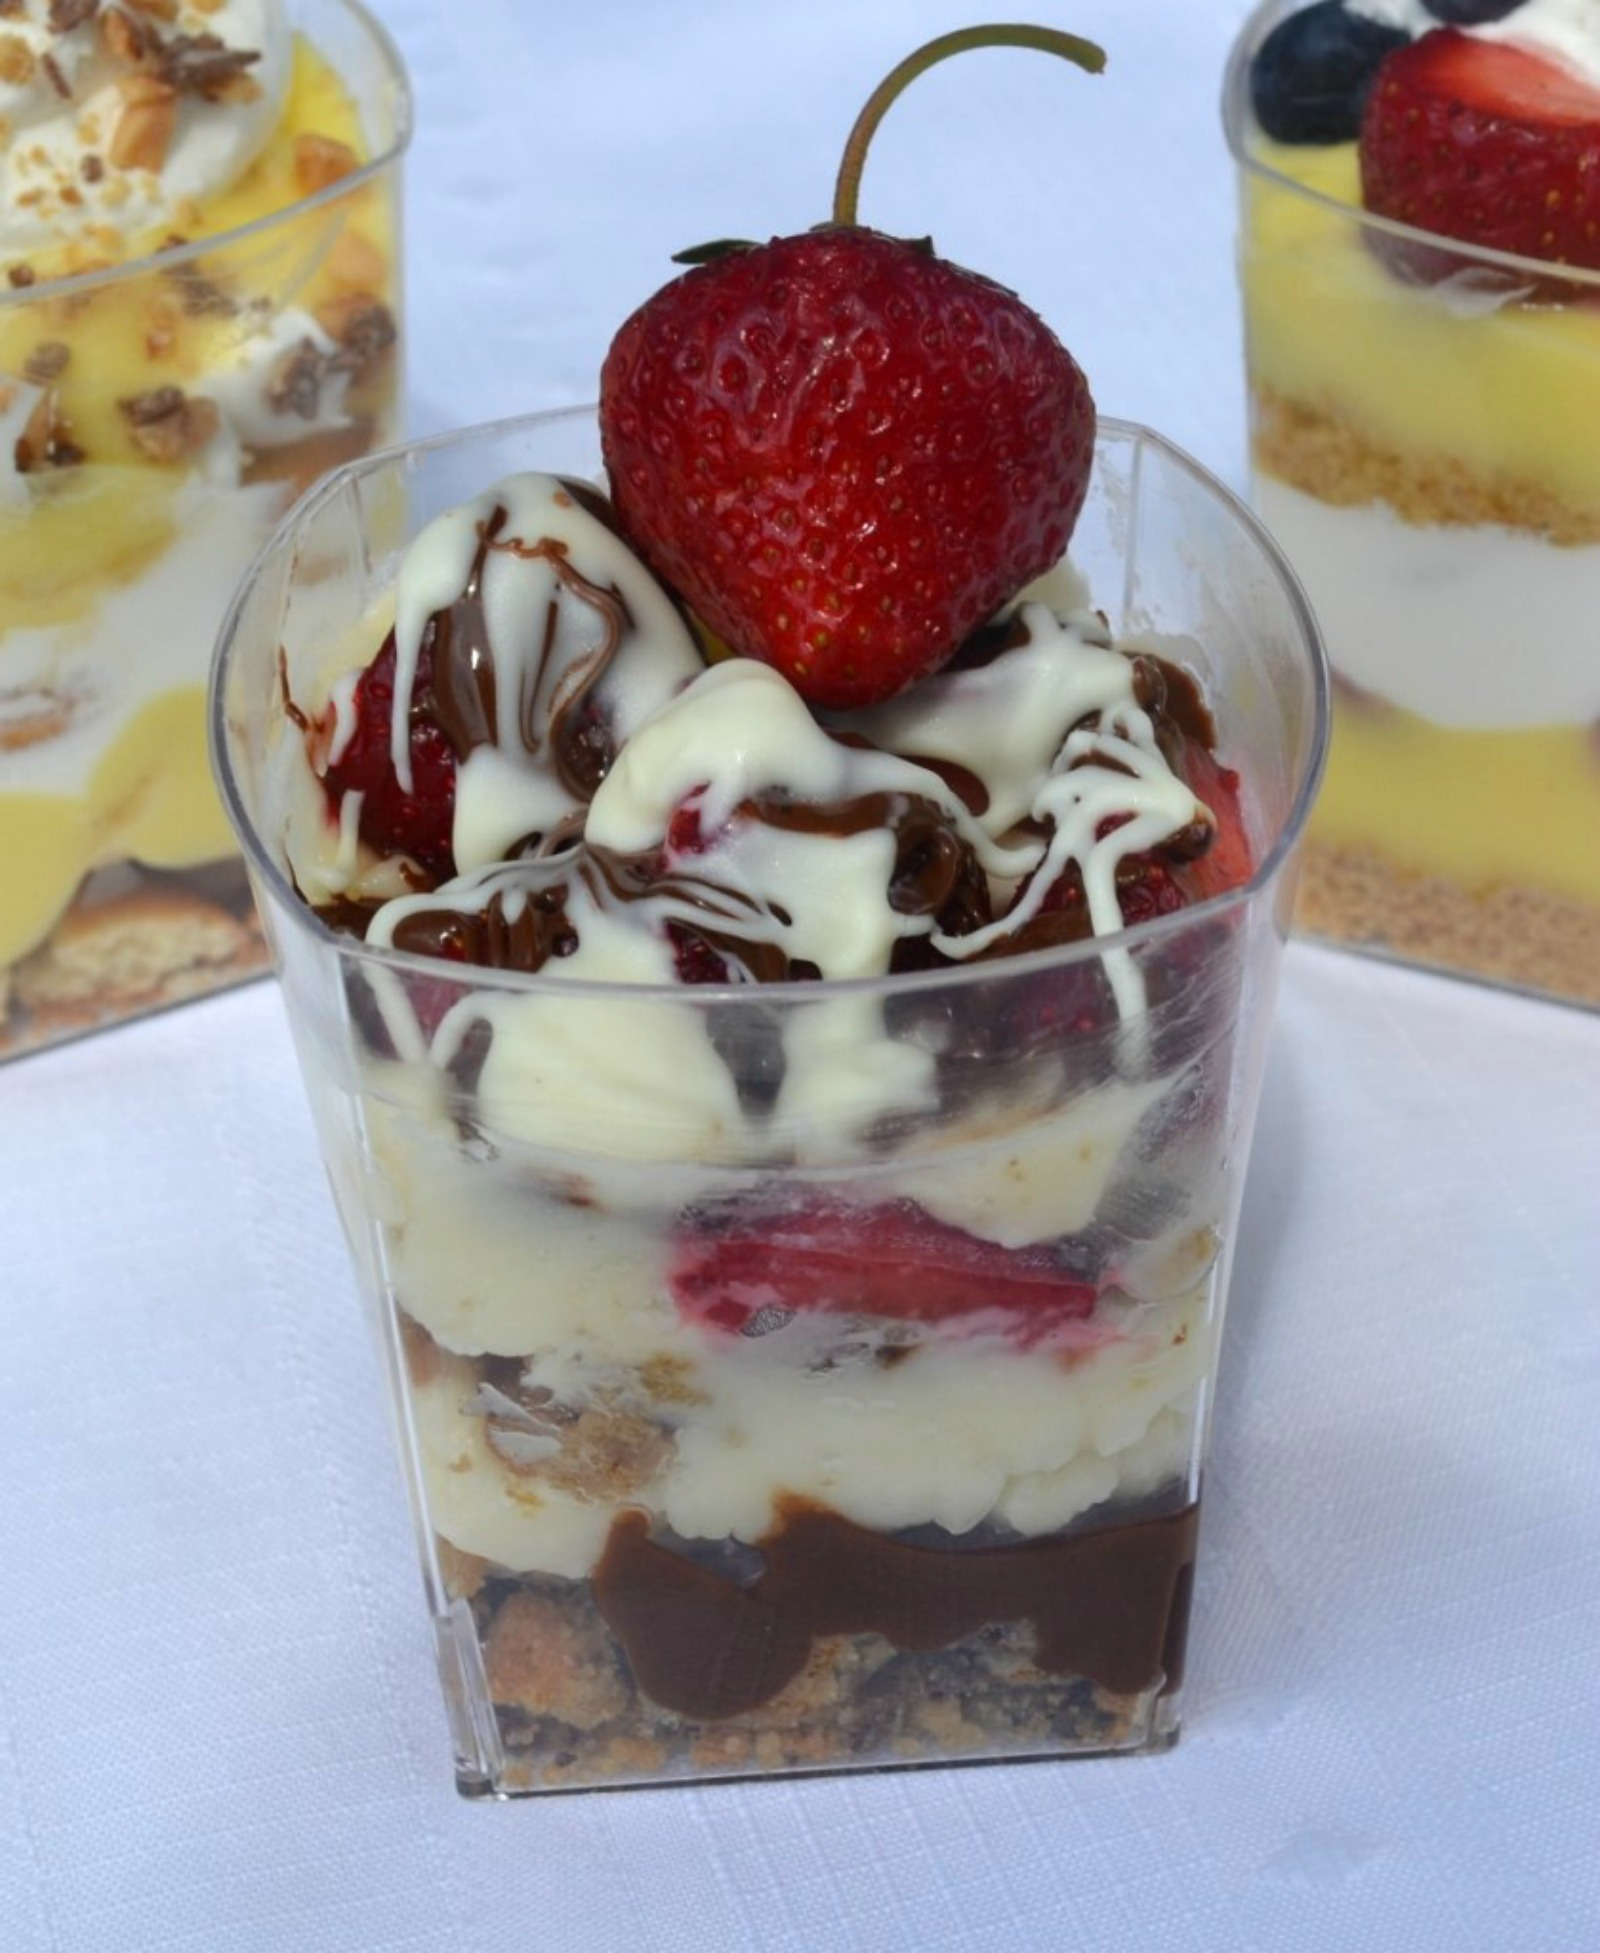 parfait bar, strawberries, bananas, fruit, mascarpone cheese